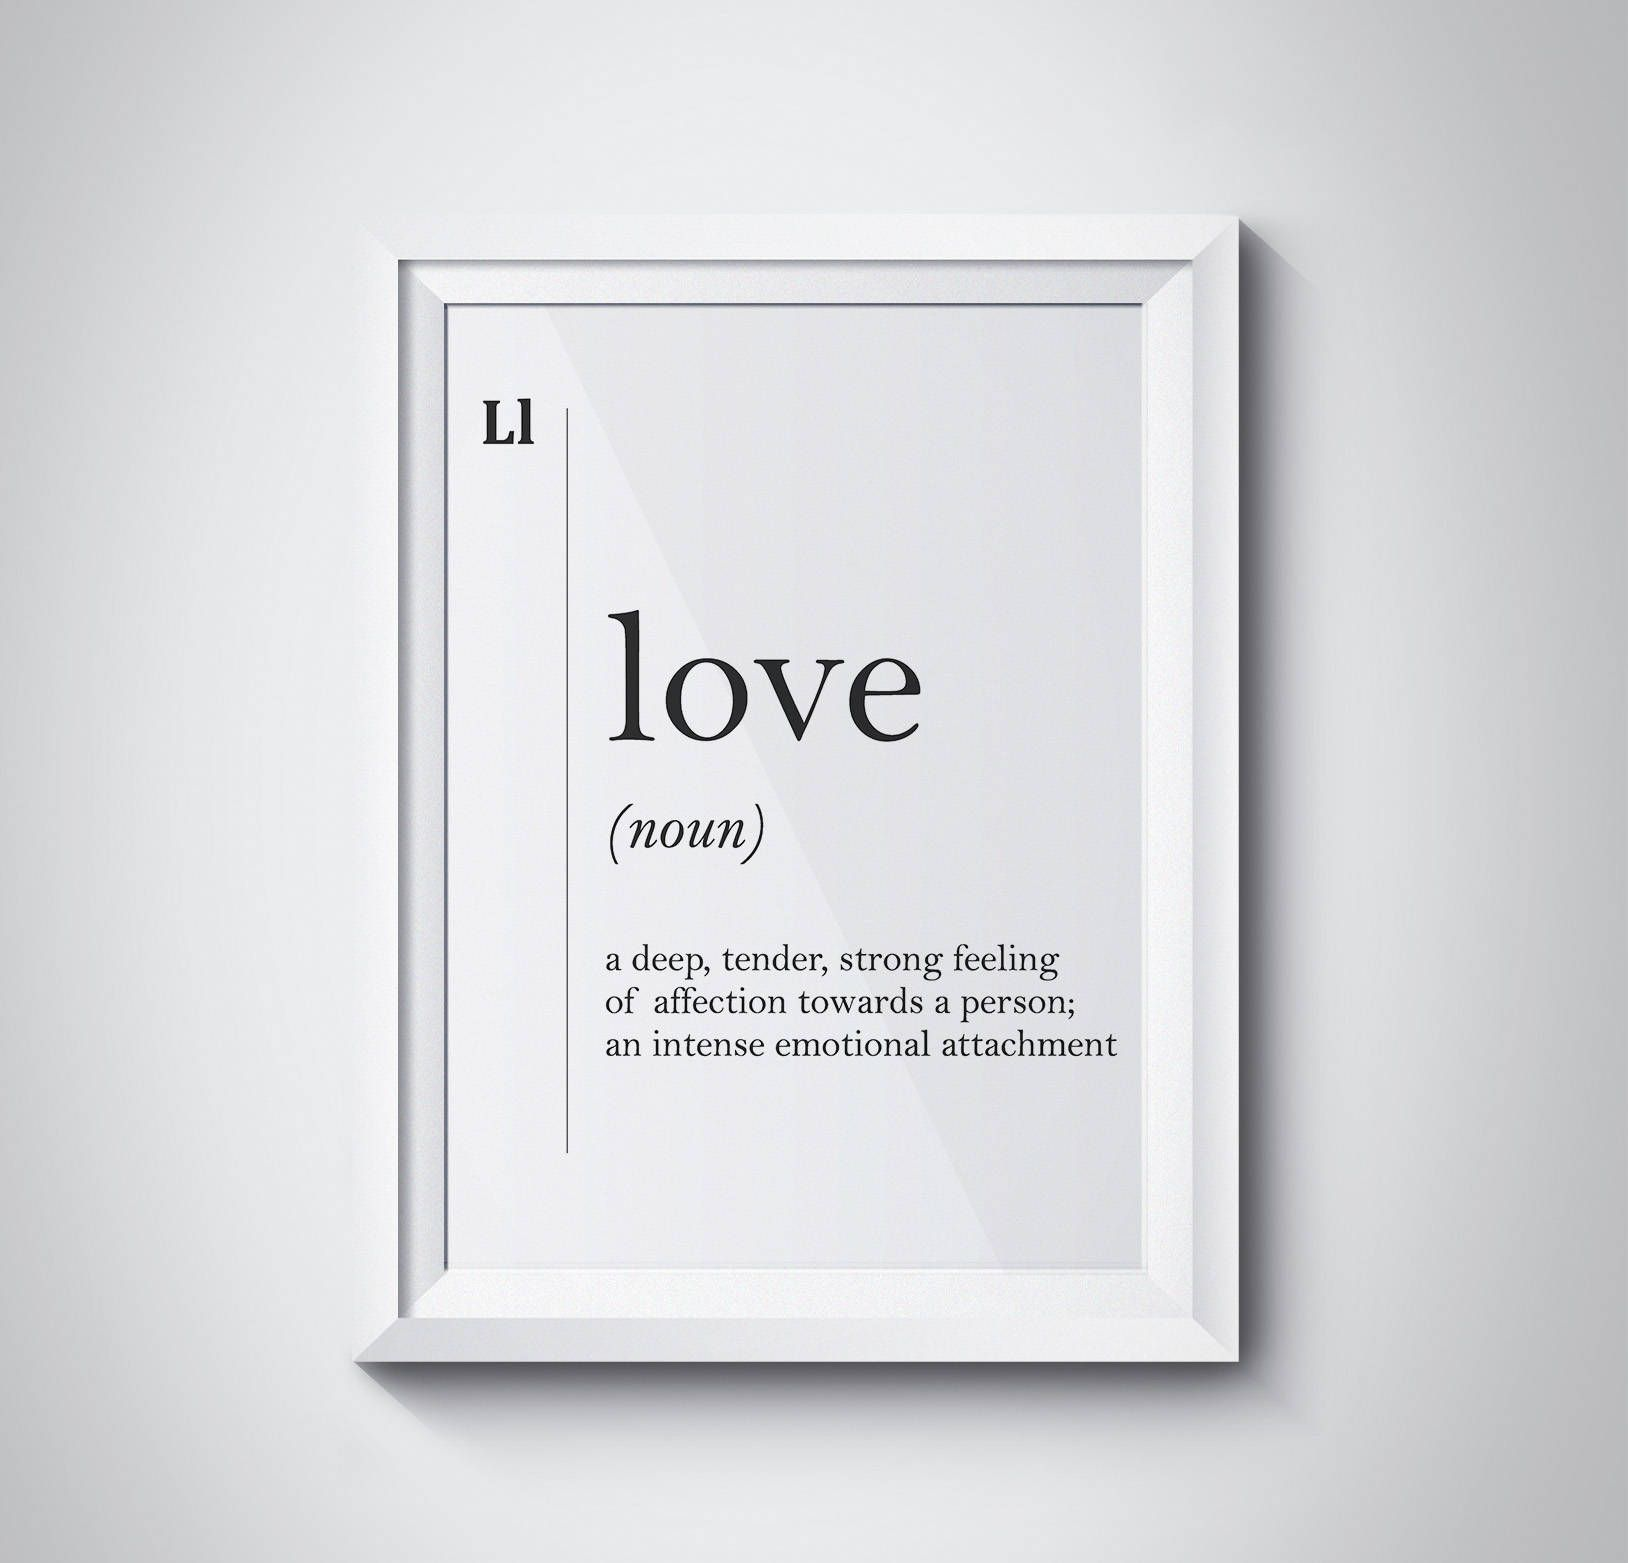 Love Definition Print, Valentines Gift, Wall Art Prints, Love Wall Art, Definition Print, Modern Art, Love Art, Minimalism, #HQDEF020 by HQstudio on Etsy